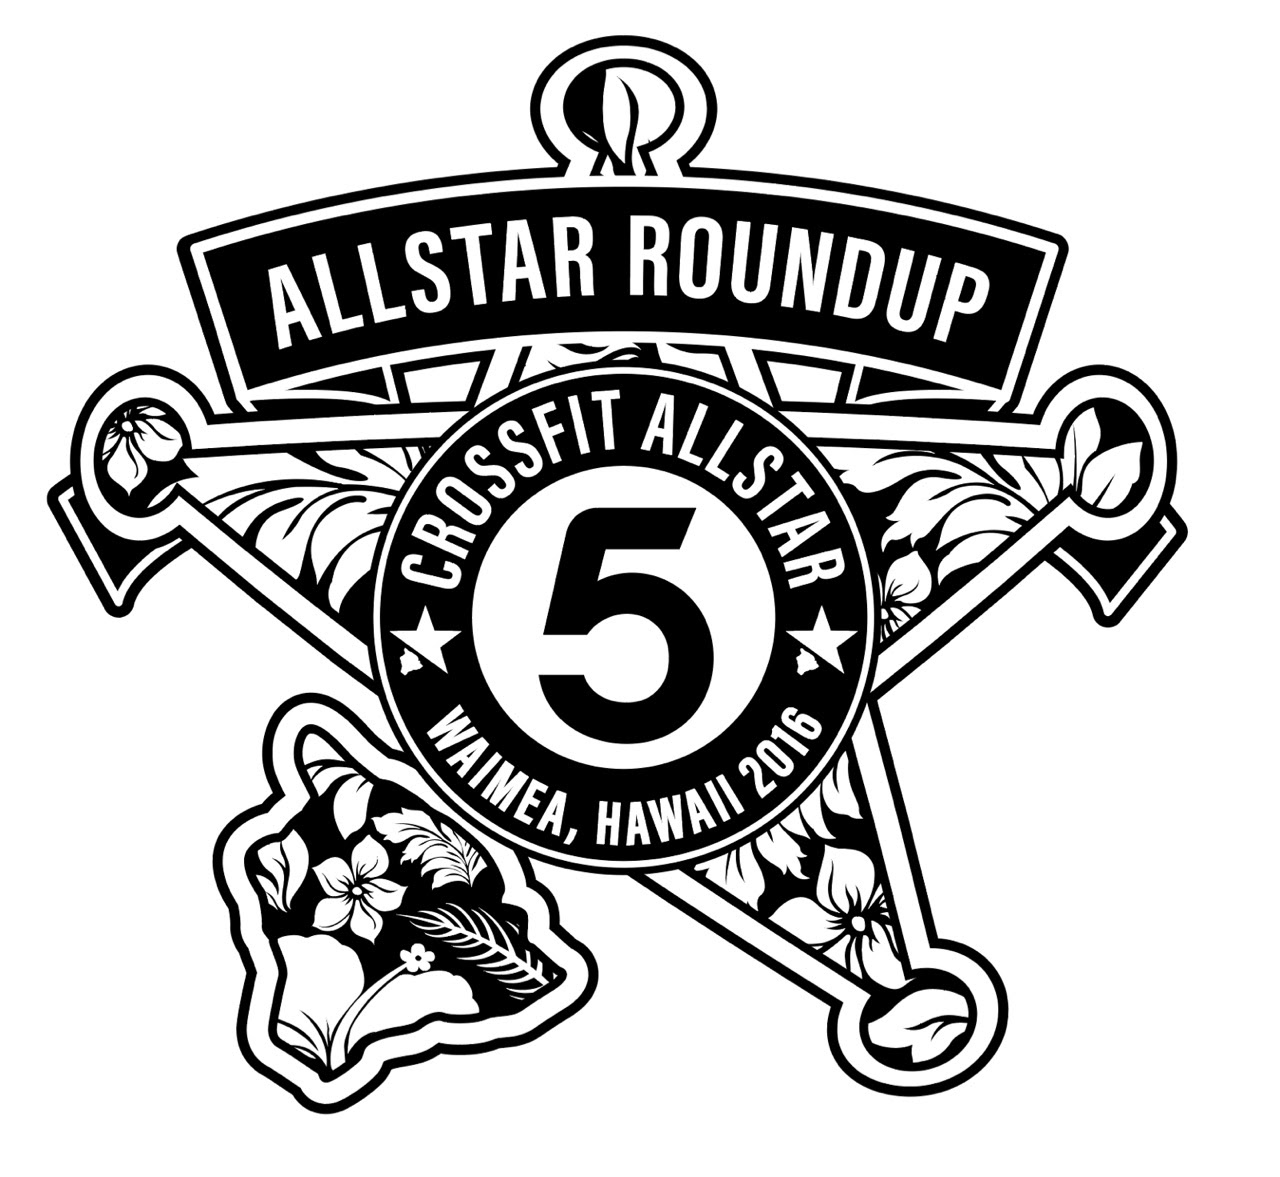 AllStar Round-Up 2016 logo